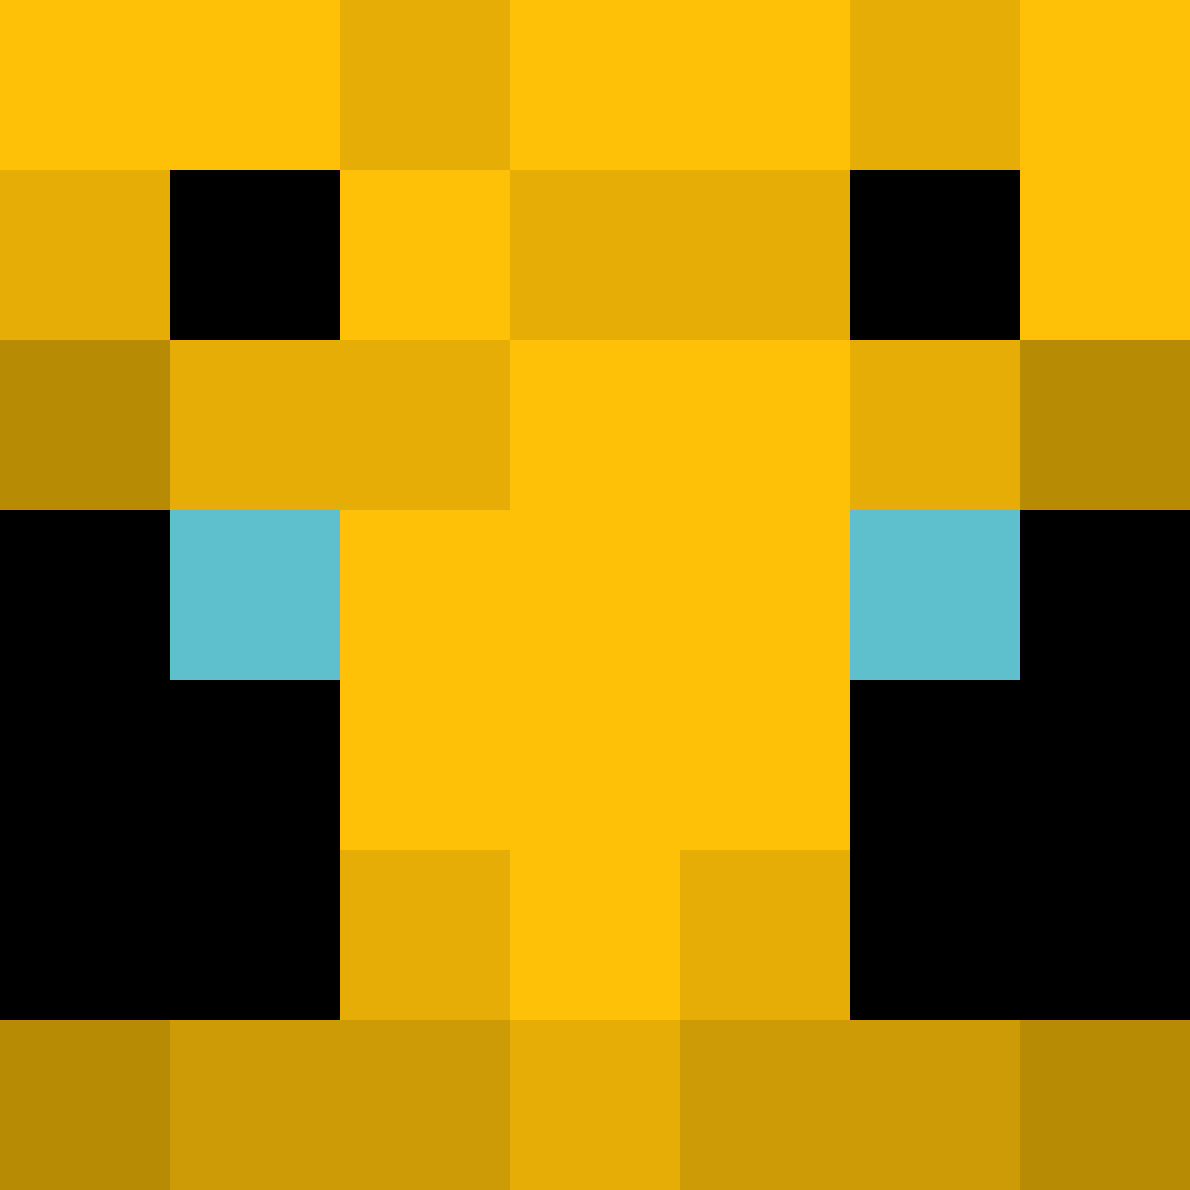 Pixilart Bee from minecraft by Novamations